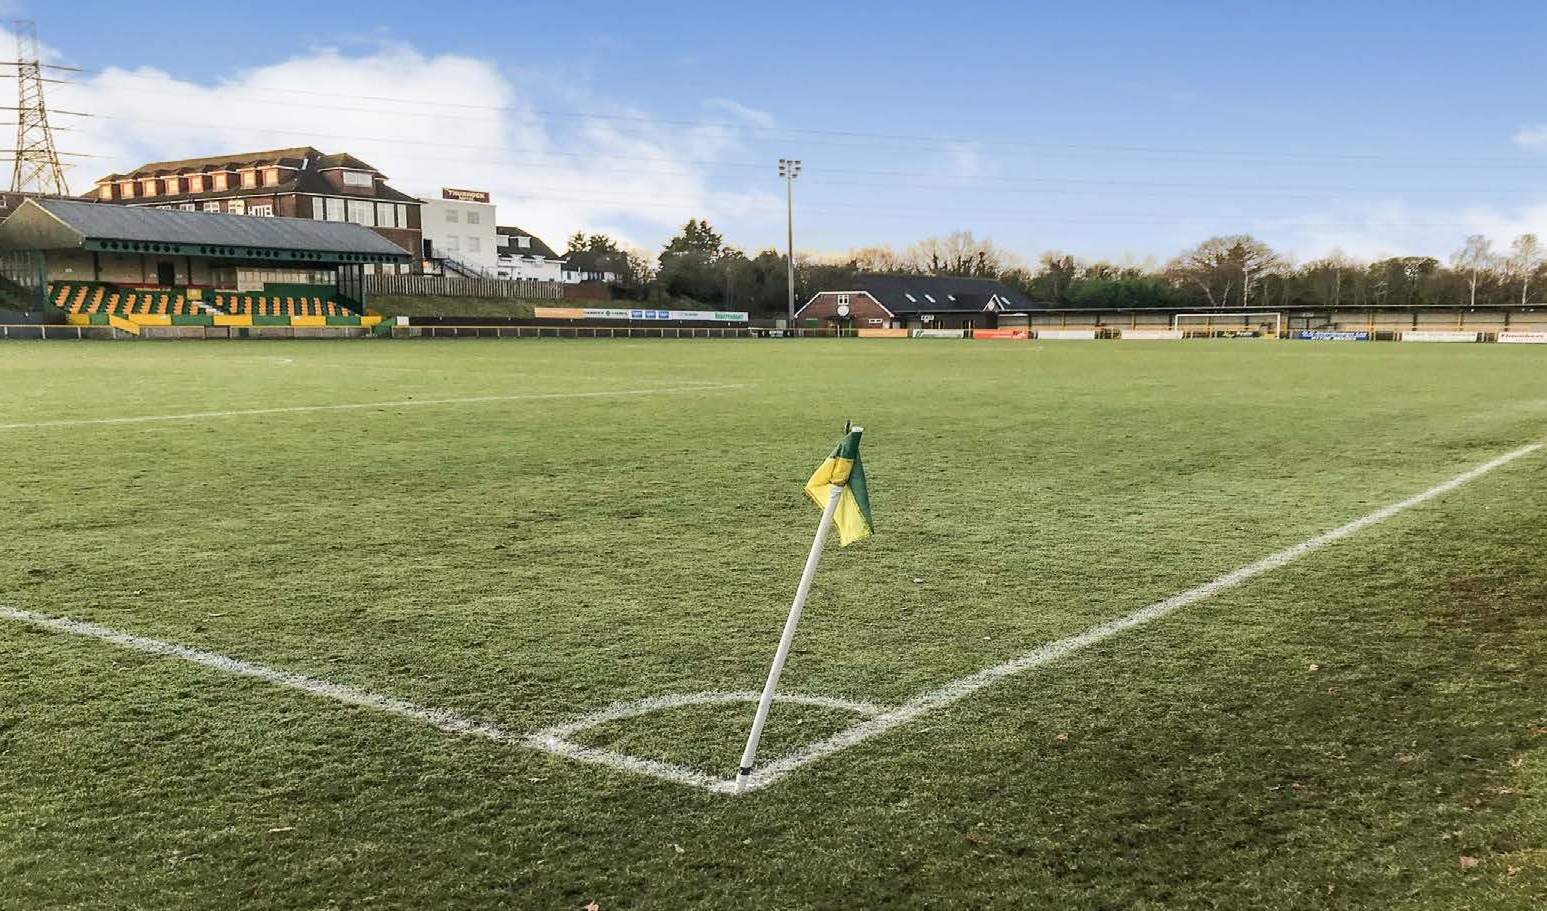 FOR SALE: Thurrock Football Club and Grounds